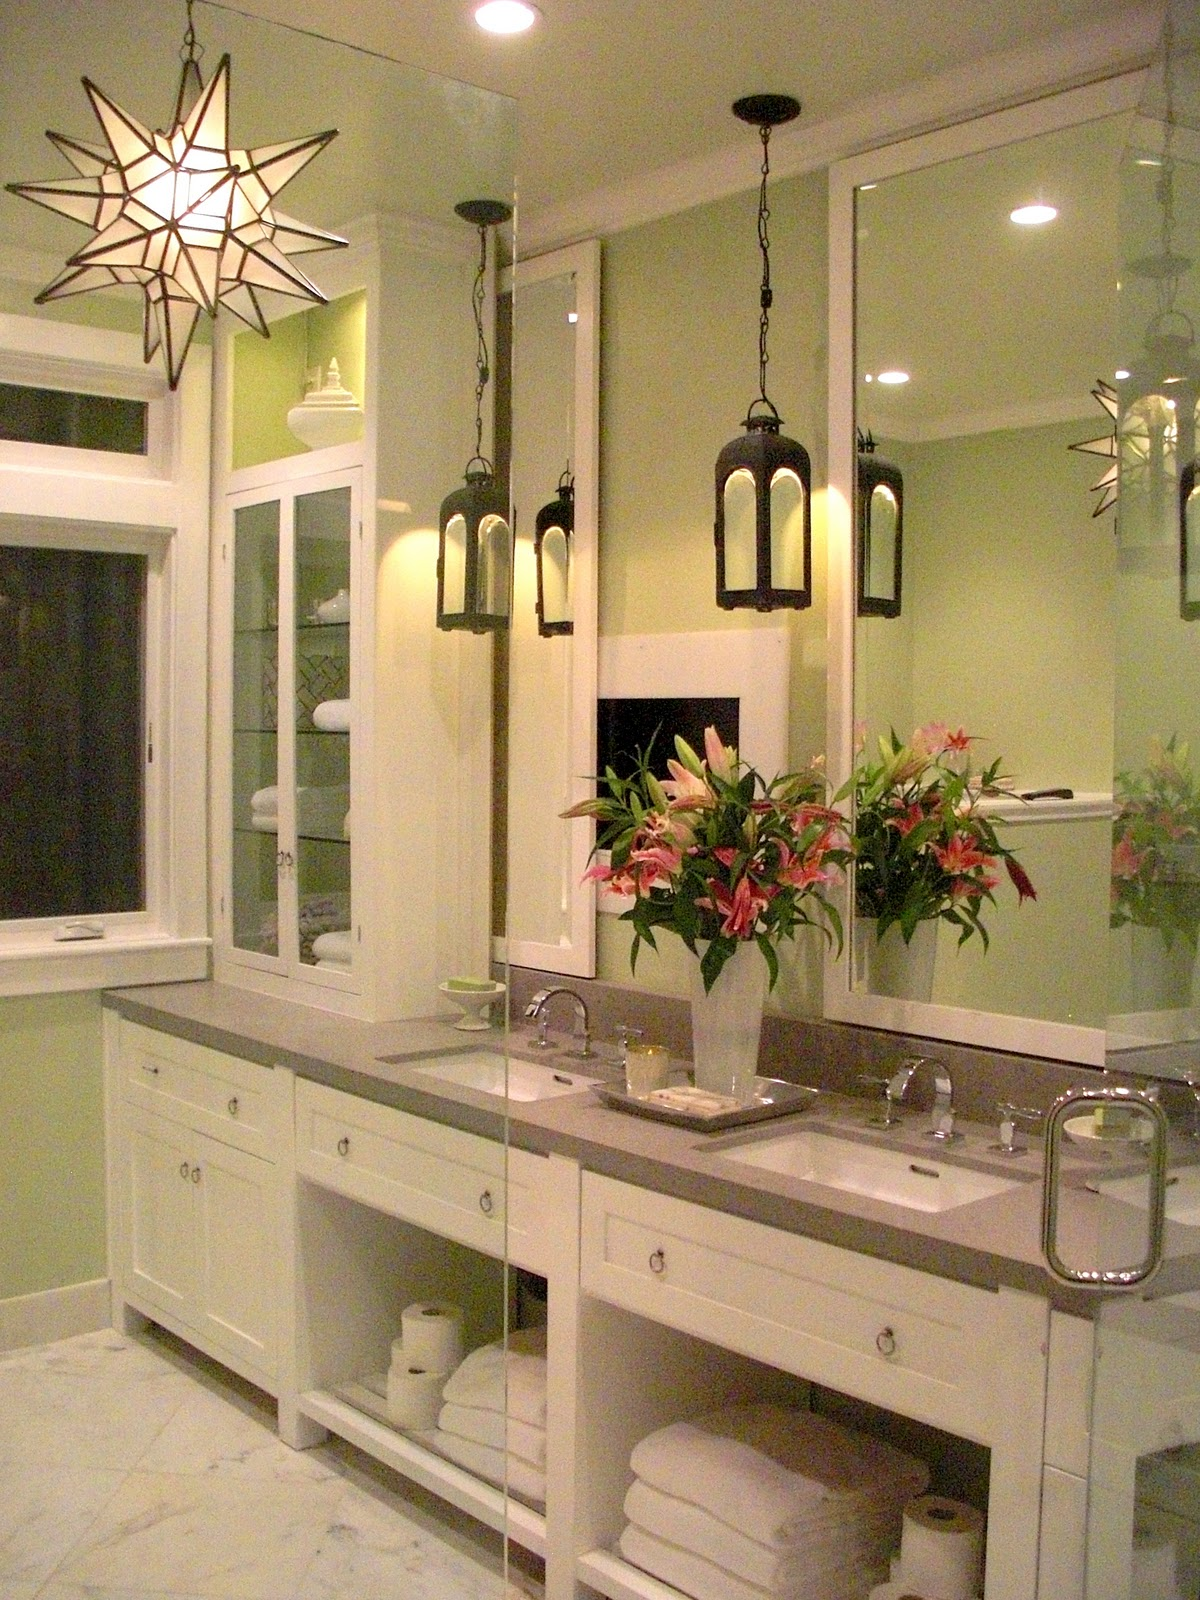 Katiedid katie denham interiors on bath crashers for Light fixtures for bathrooms